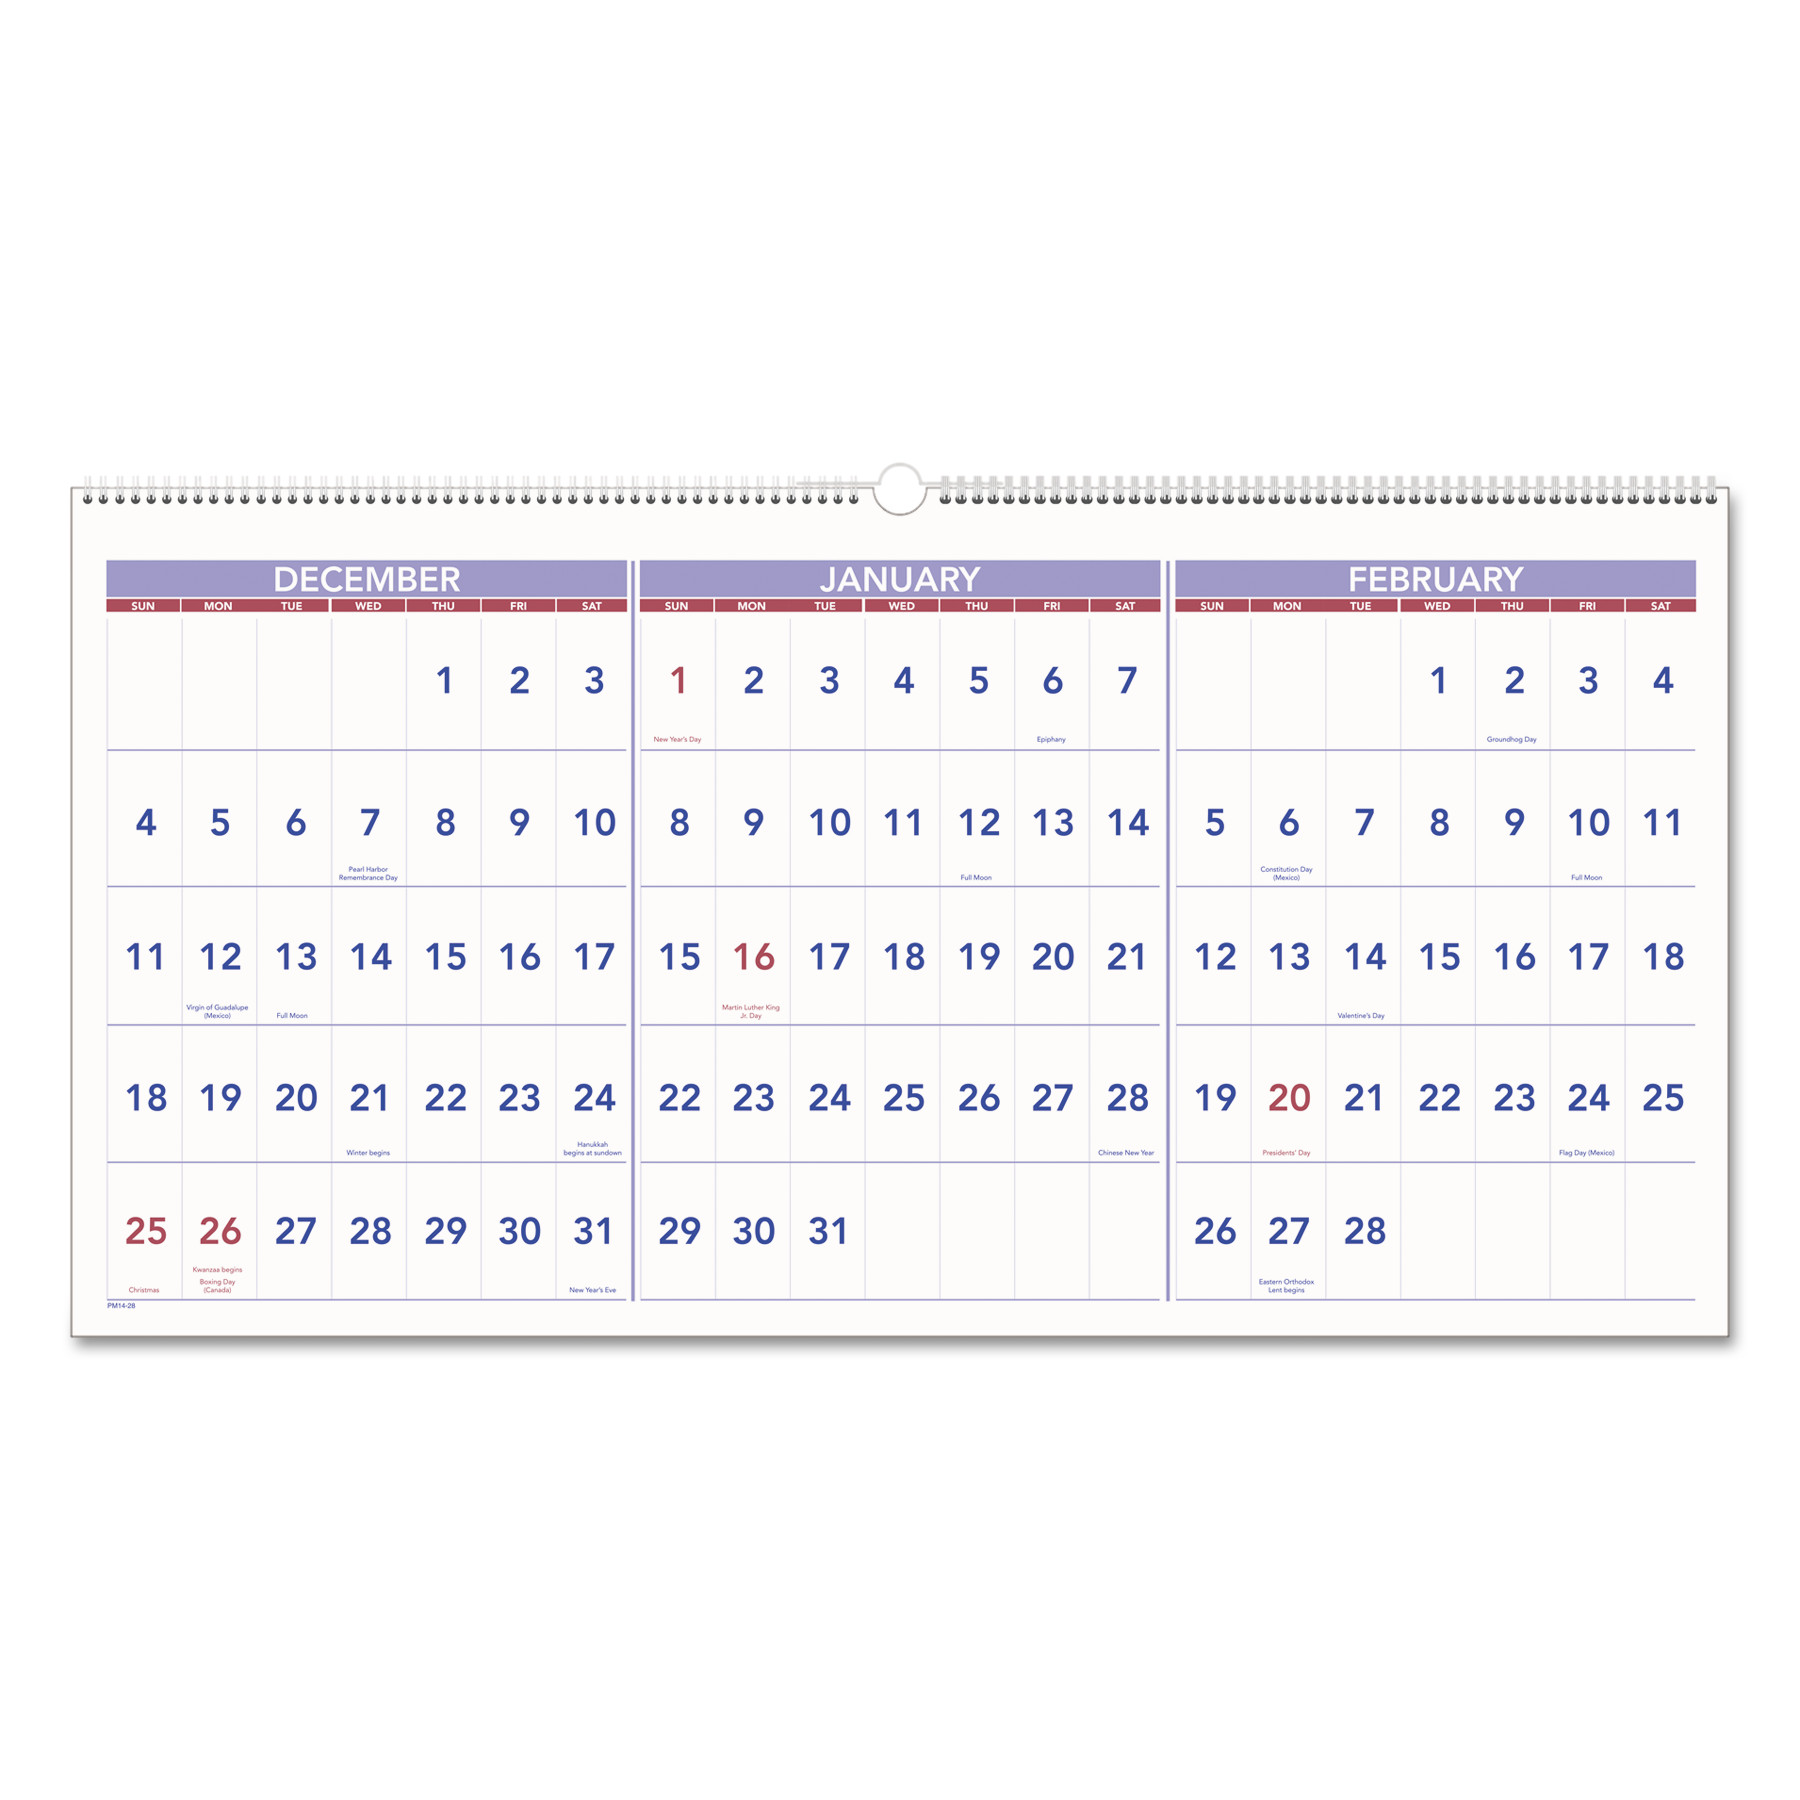 AT-A-GLANCE Horizontal-Format Three-Month Reference Wall Calendar, 23 1/2 x 12, 2017-2019